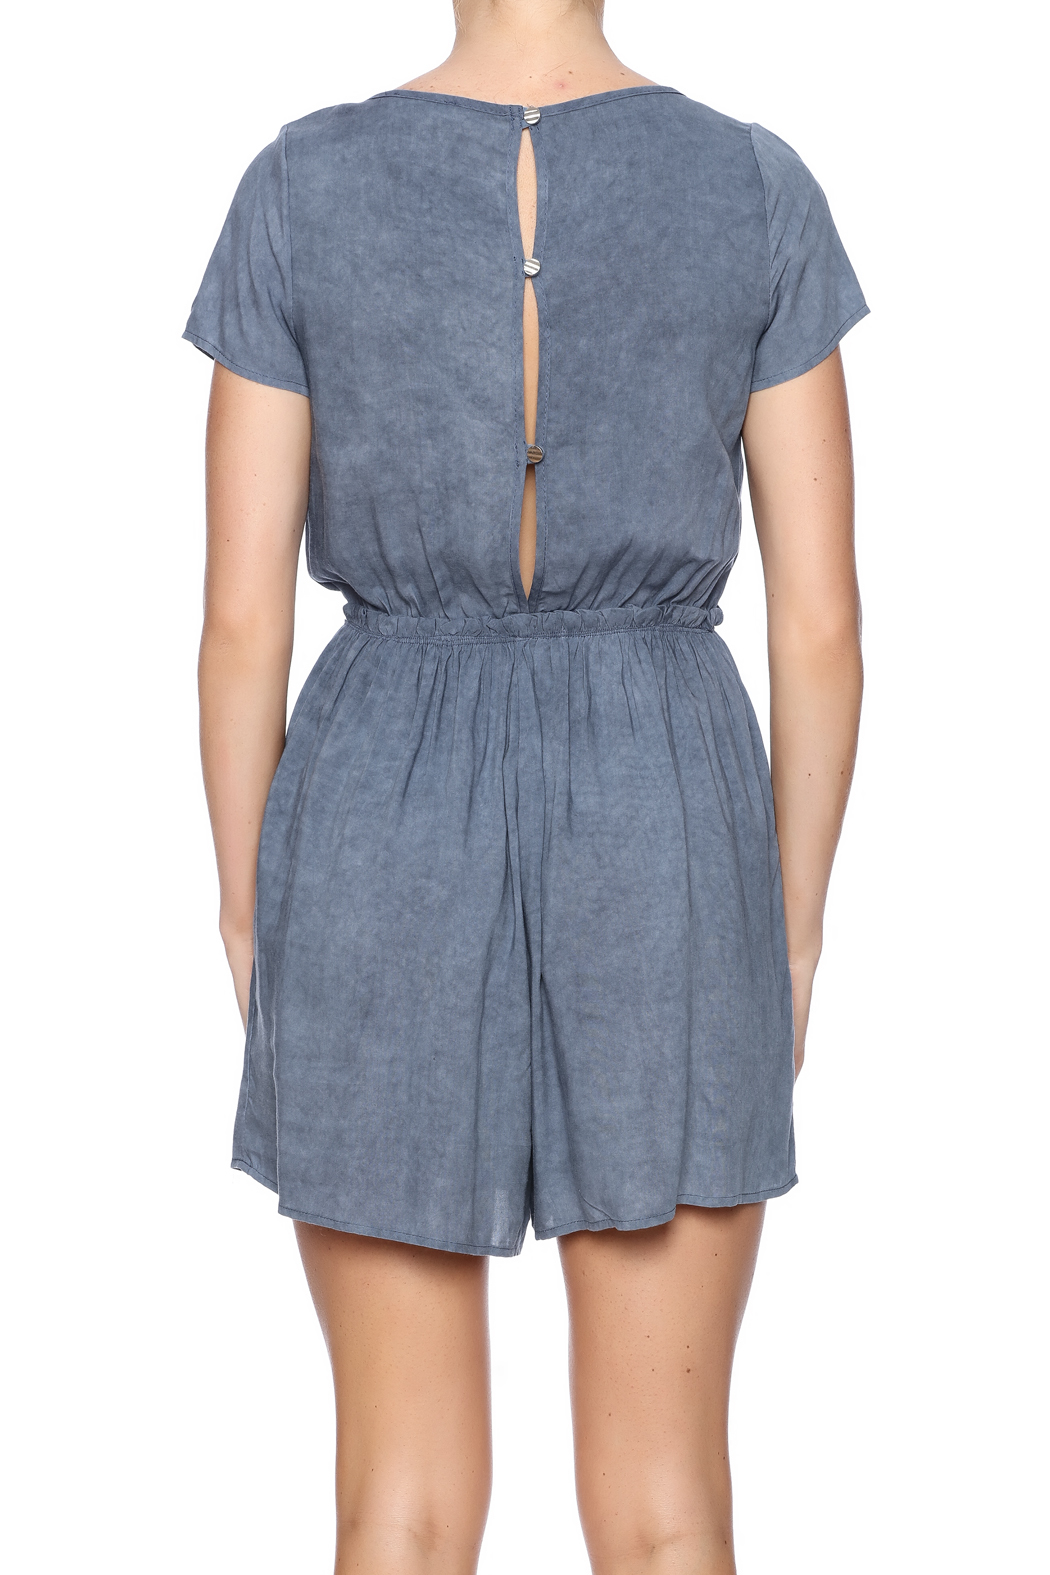 Jella Couture Washed Denim Romper - Back Cropped Image